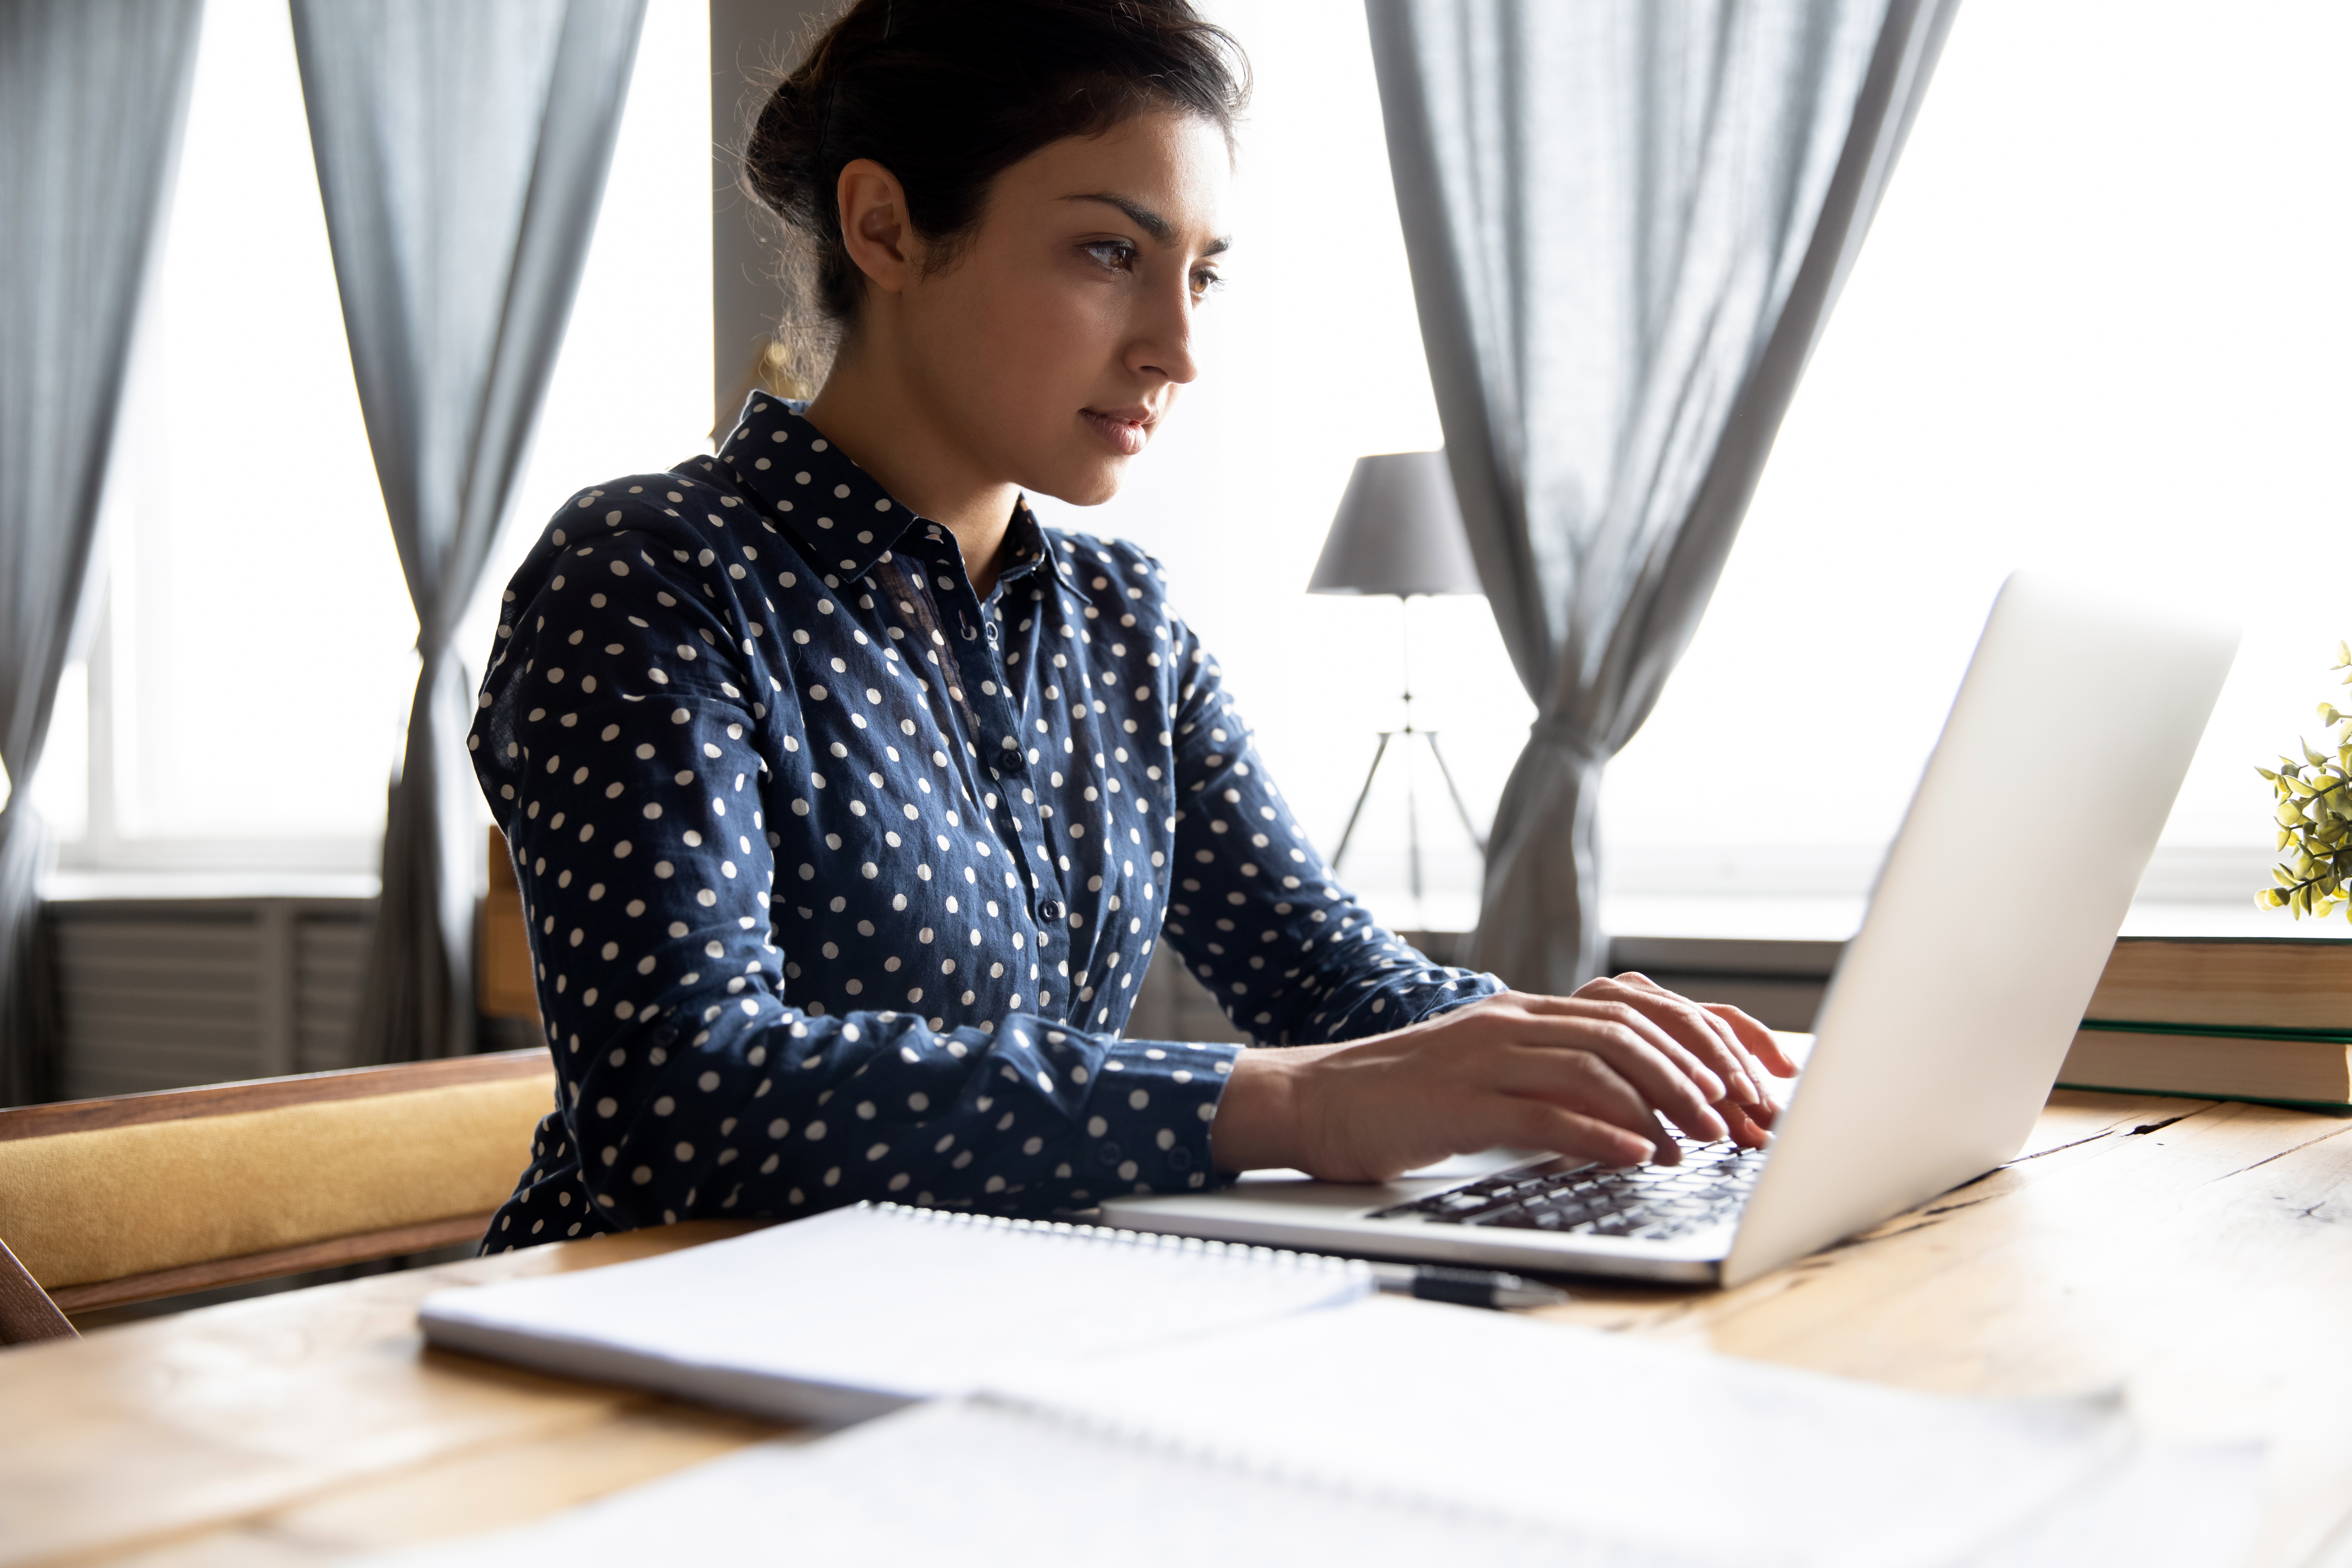 Photograph of a woman looking typing on computer